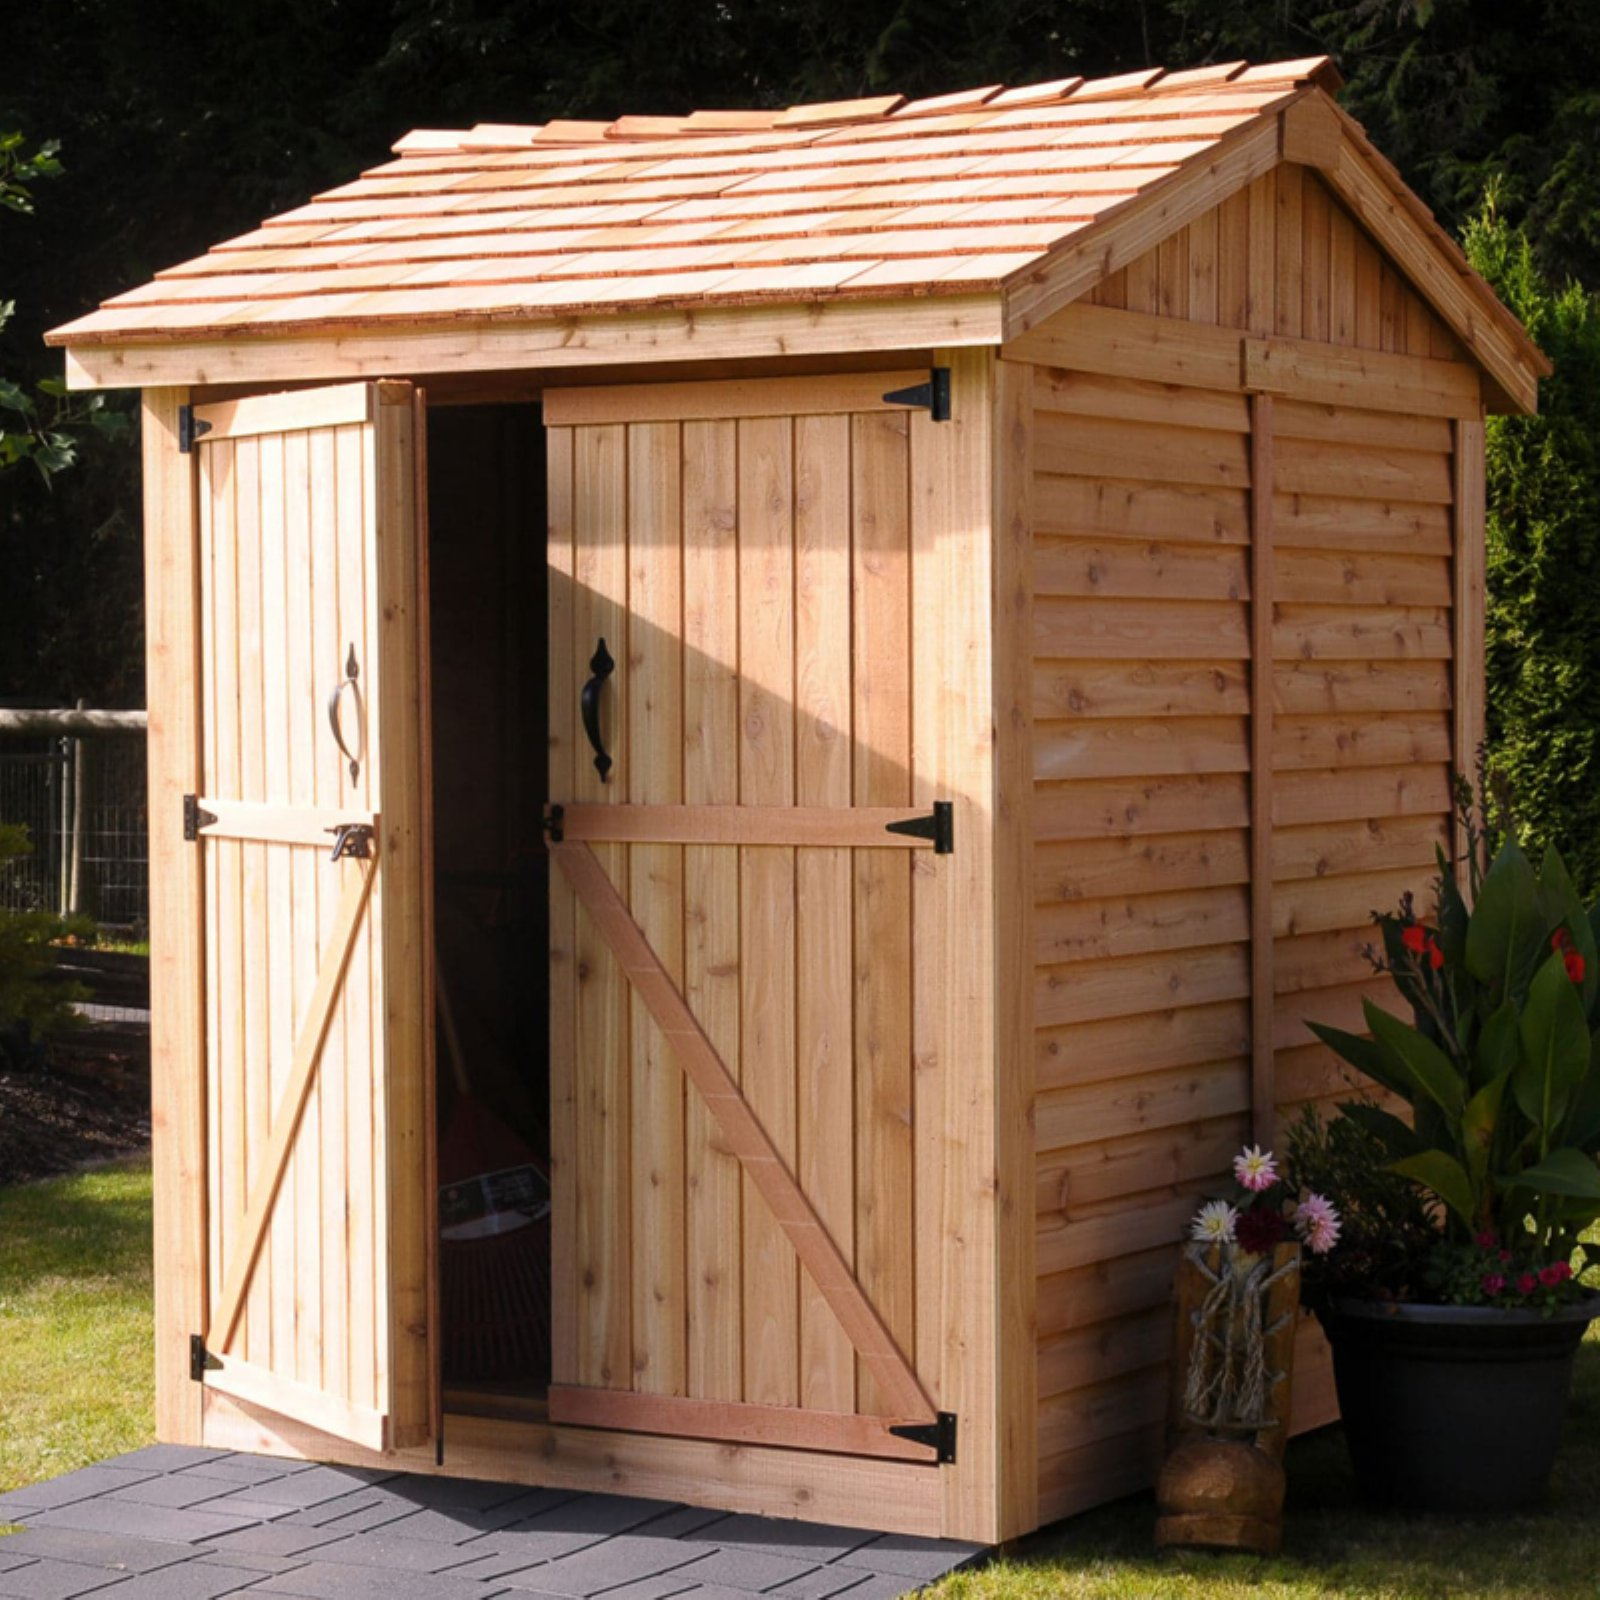 Outdoor Living Today Maximizer 6 x 6 ft. Storage Shed